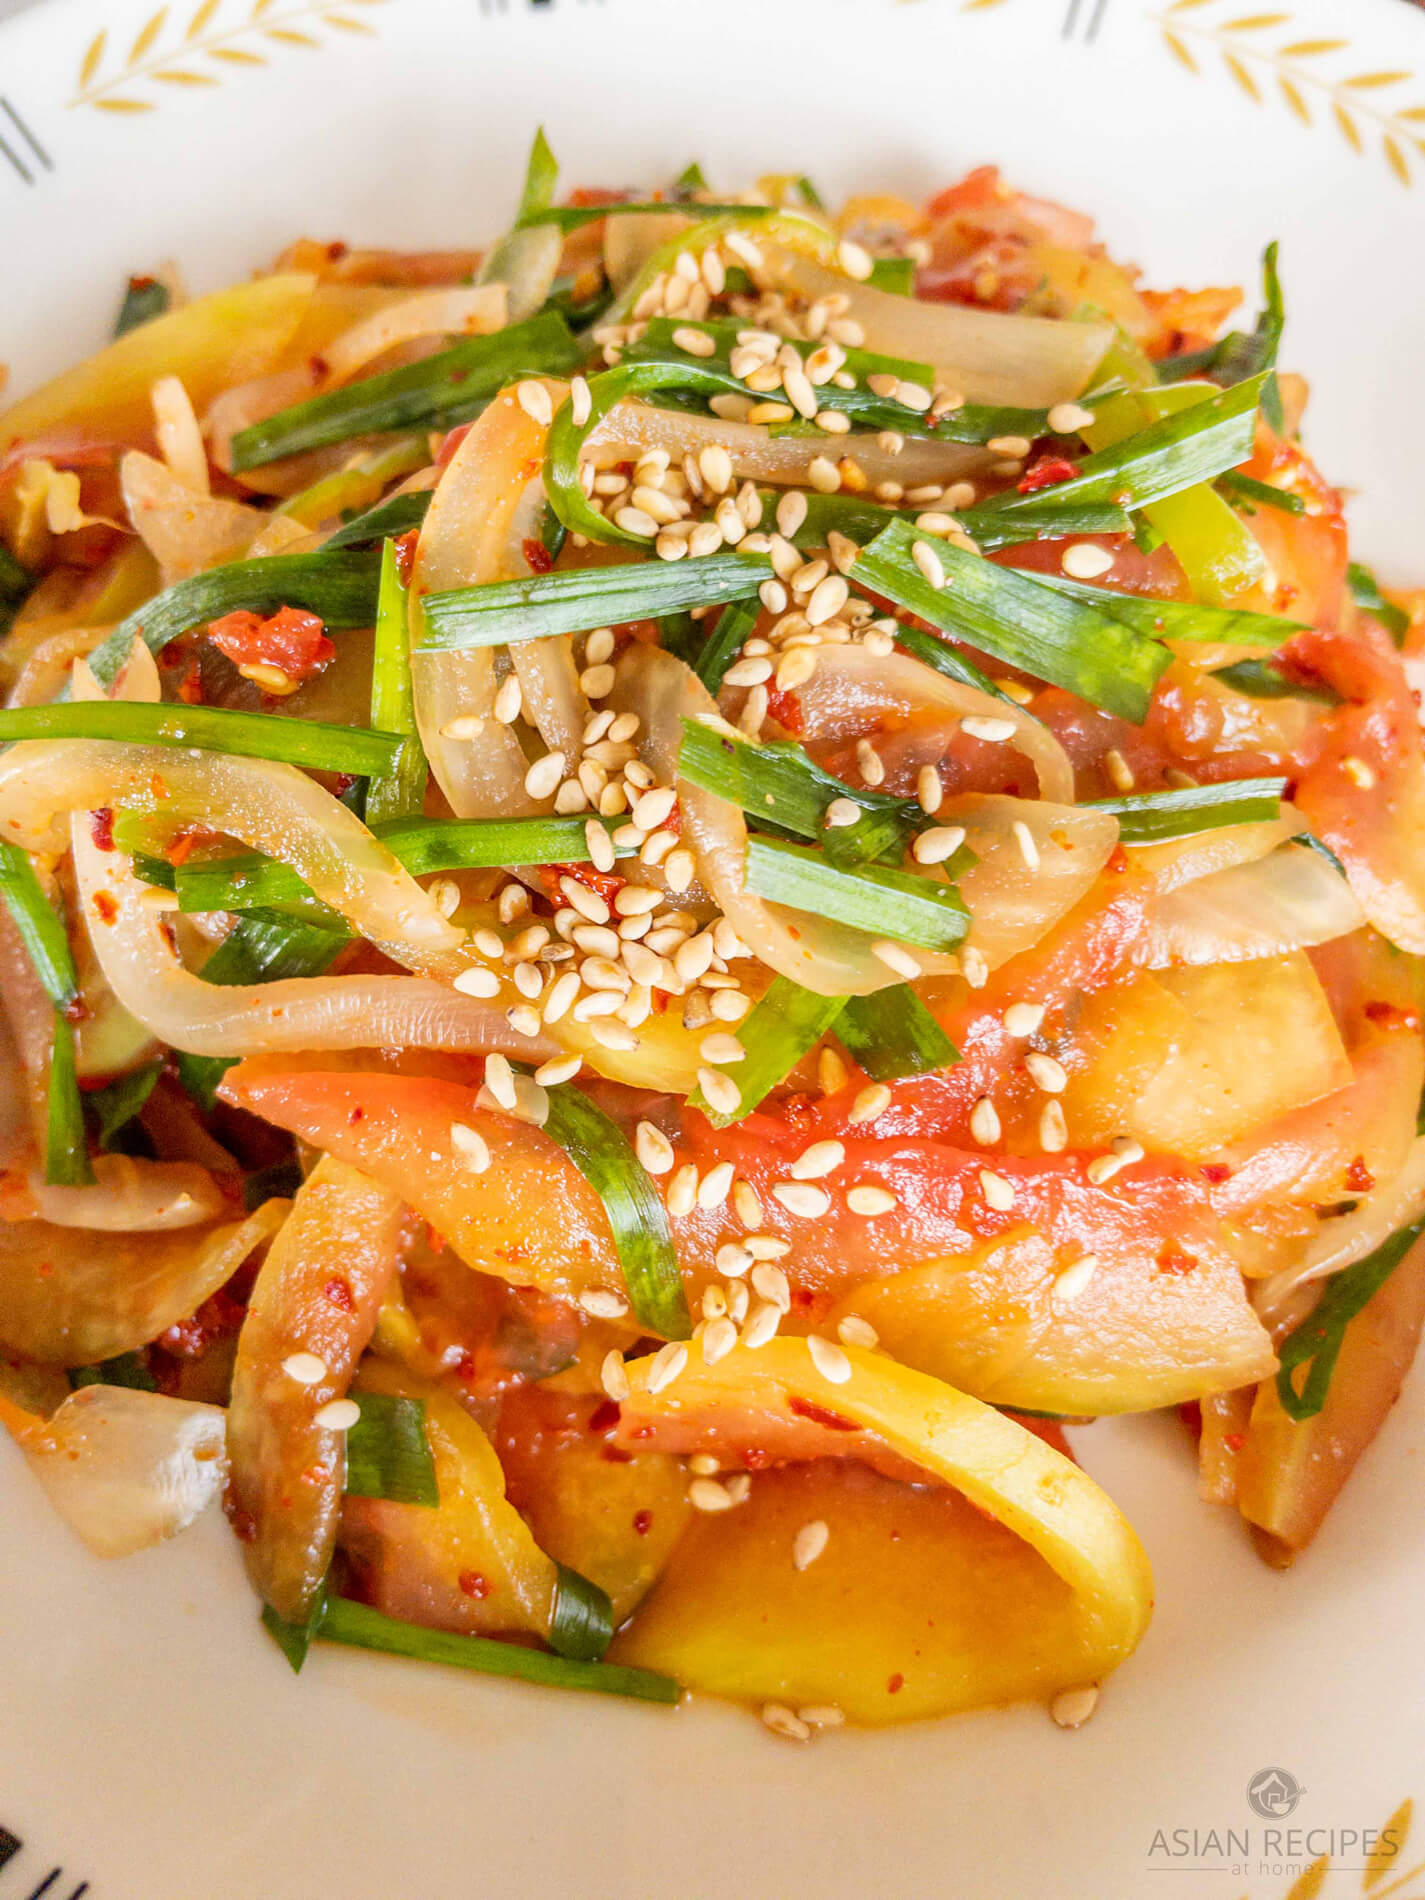 Try out our easy and quick Korean-style watermelon rind salad recipe this Summer. Thinly sliced watermelon rinds are used to create a refreshing and spicy salad.